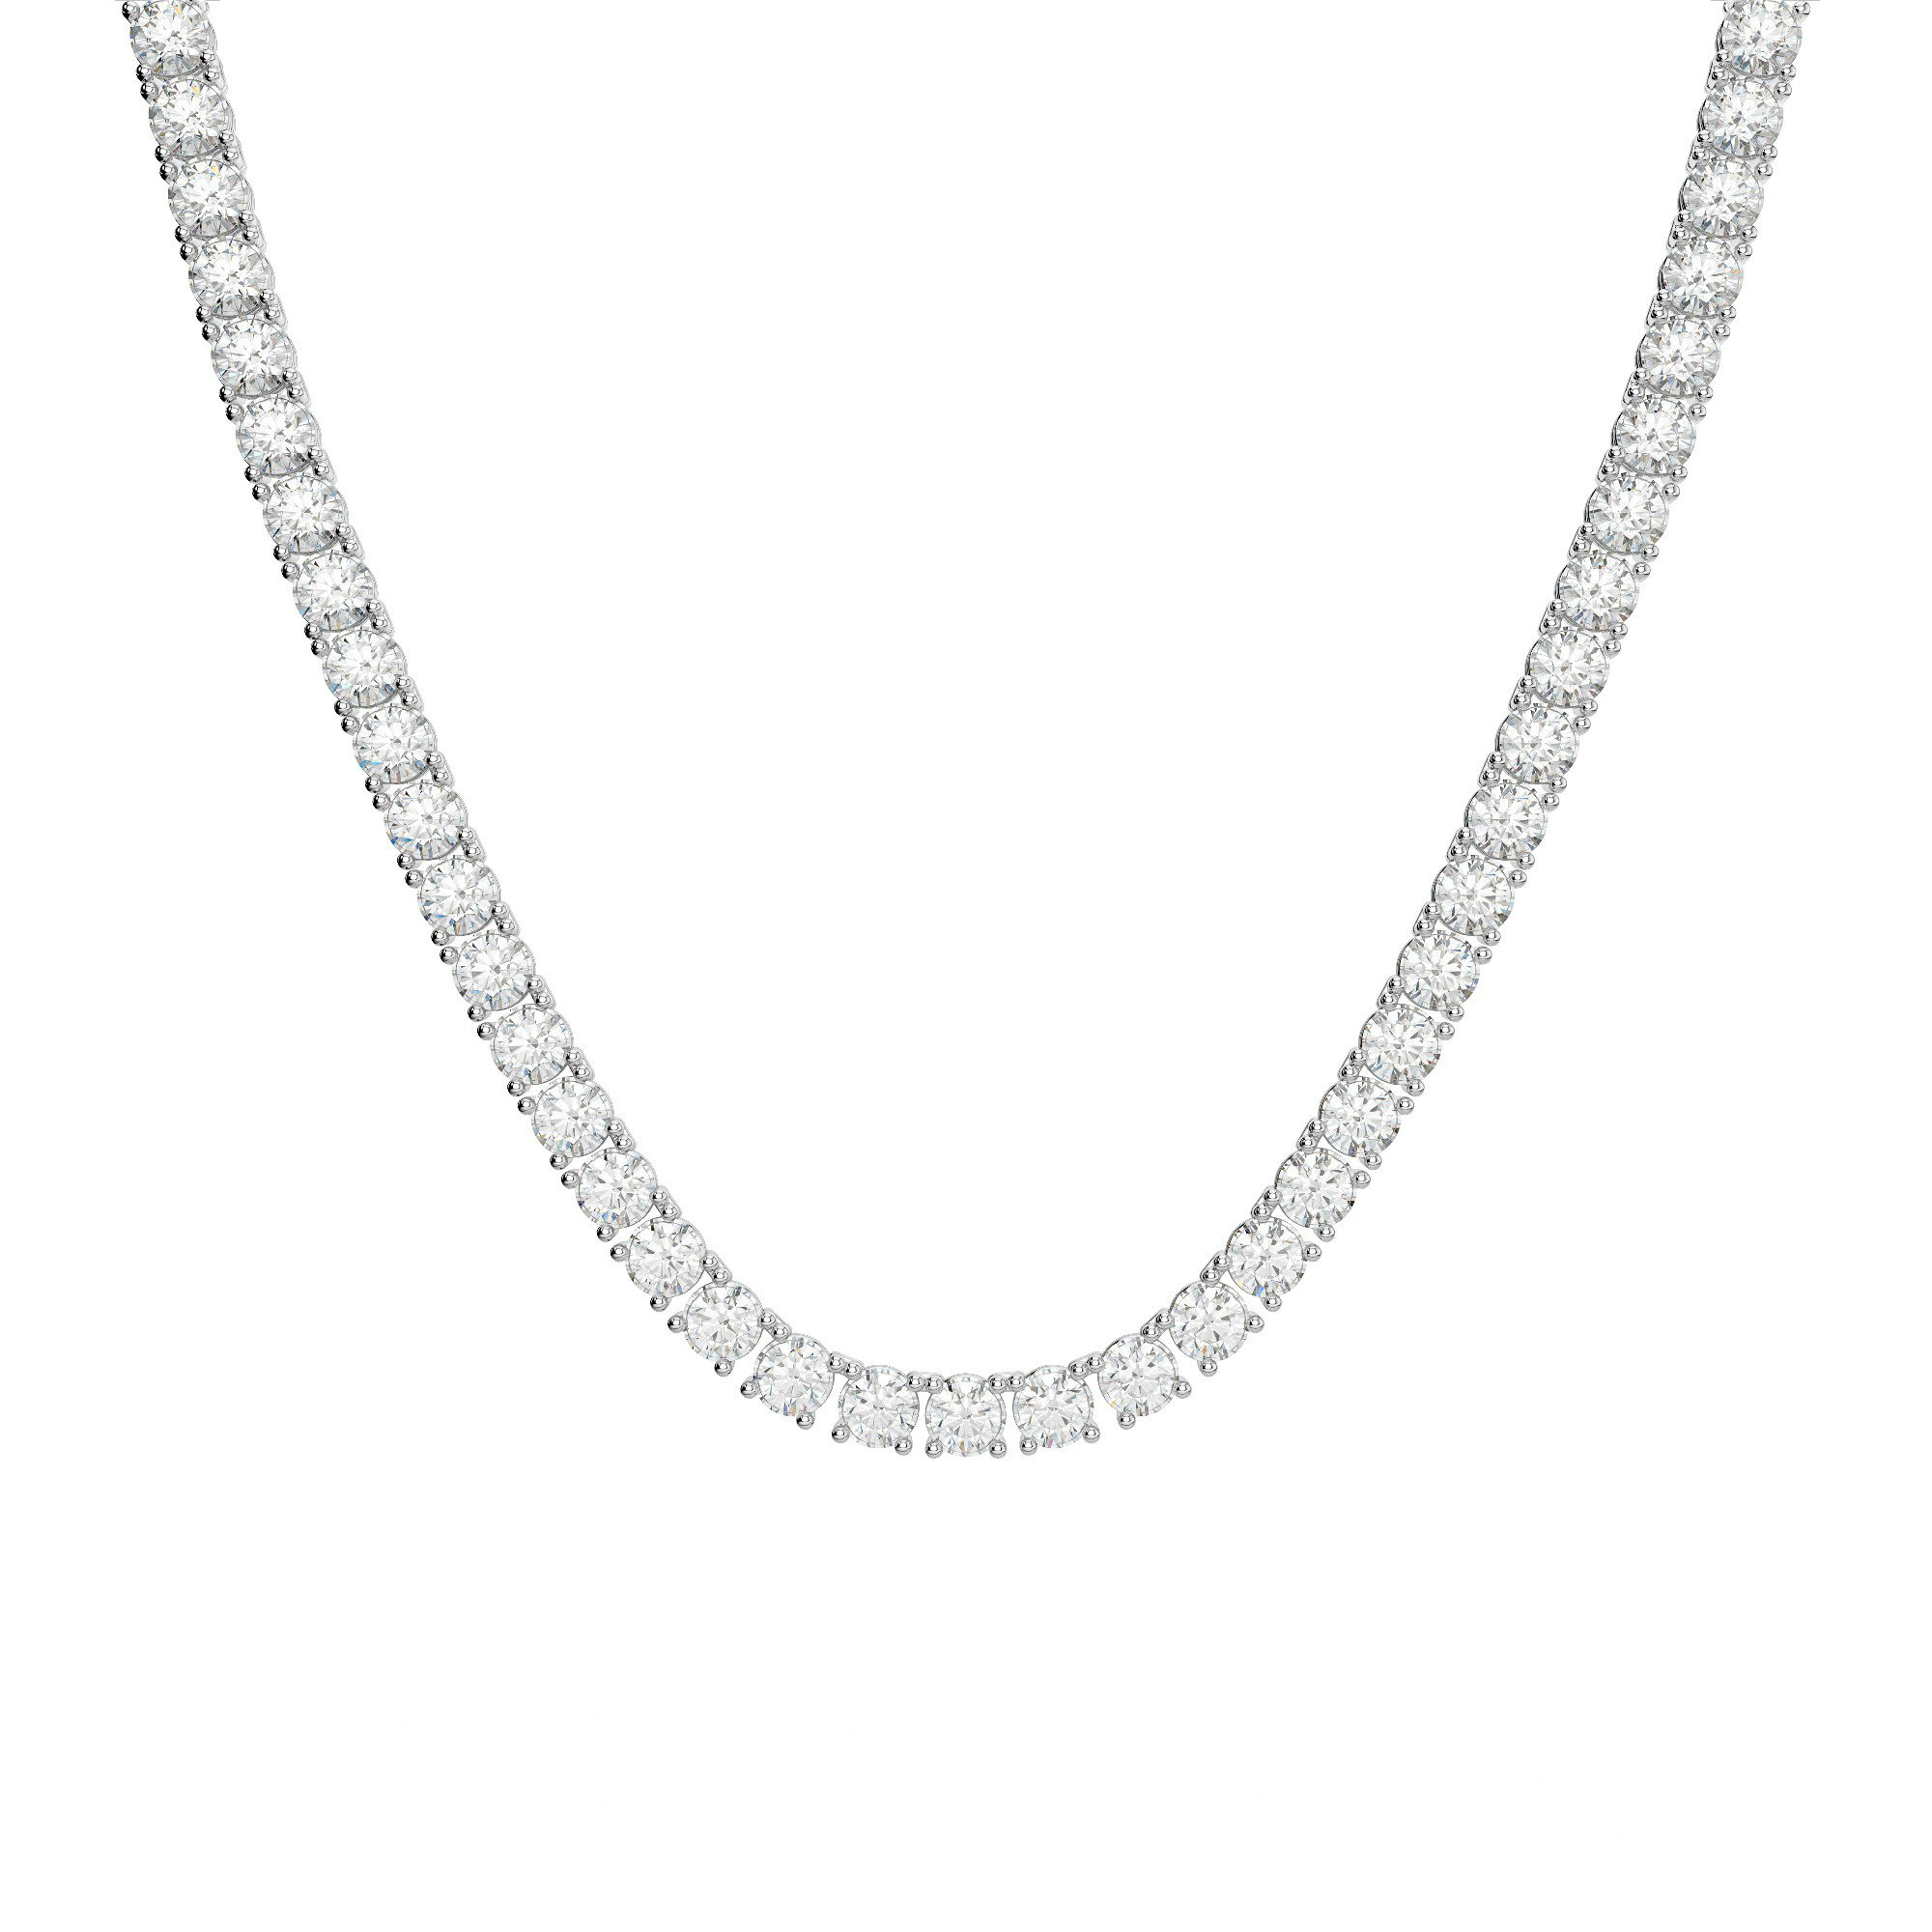 49.50 Carat Diamond Men's Necklace 20""